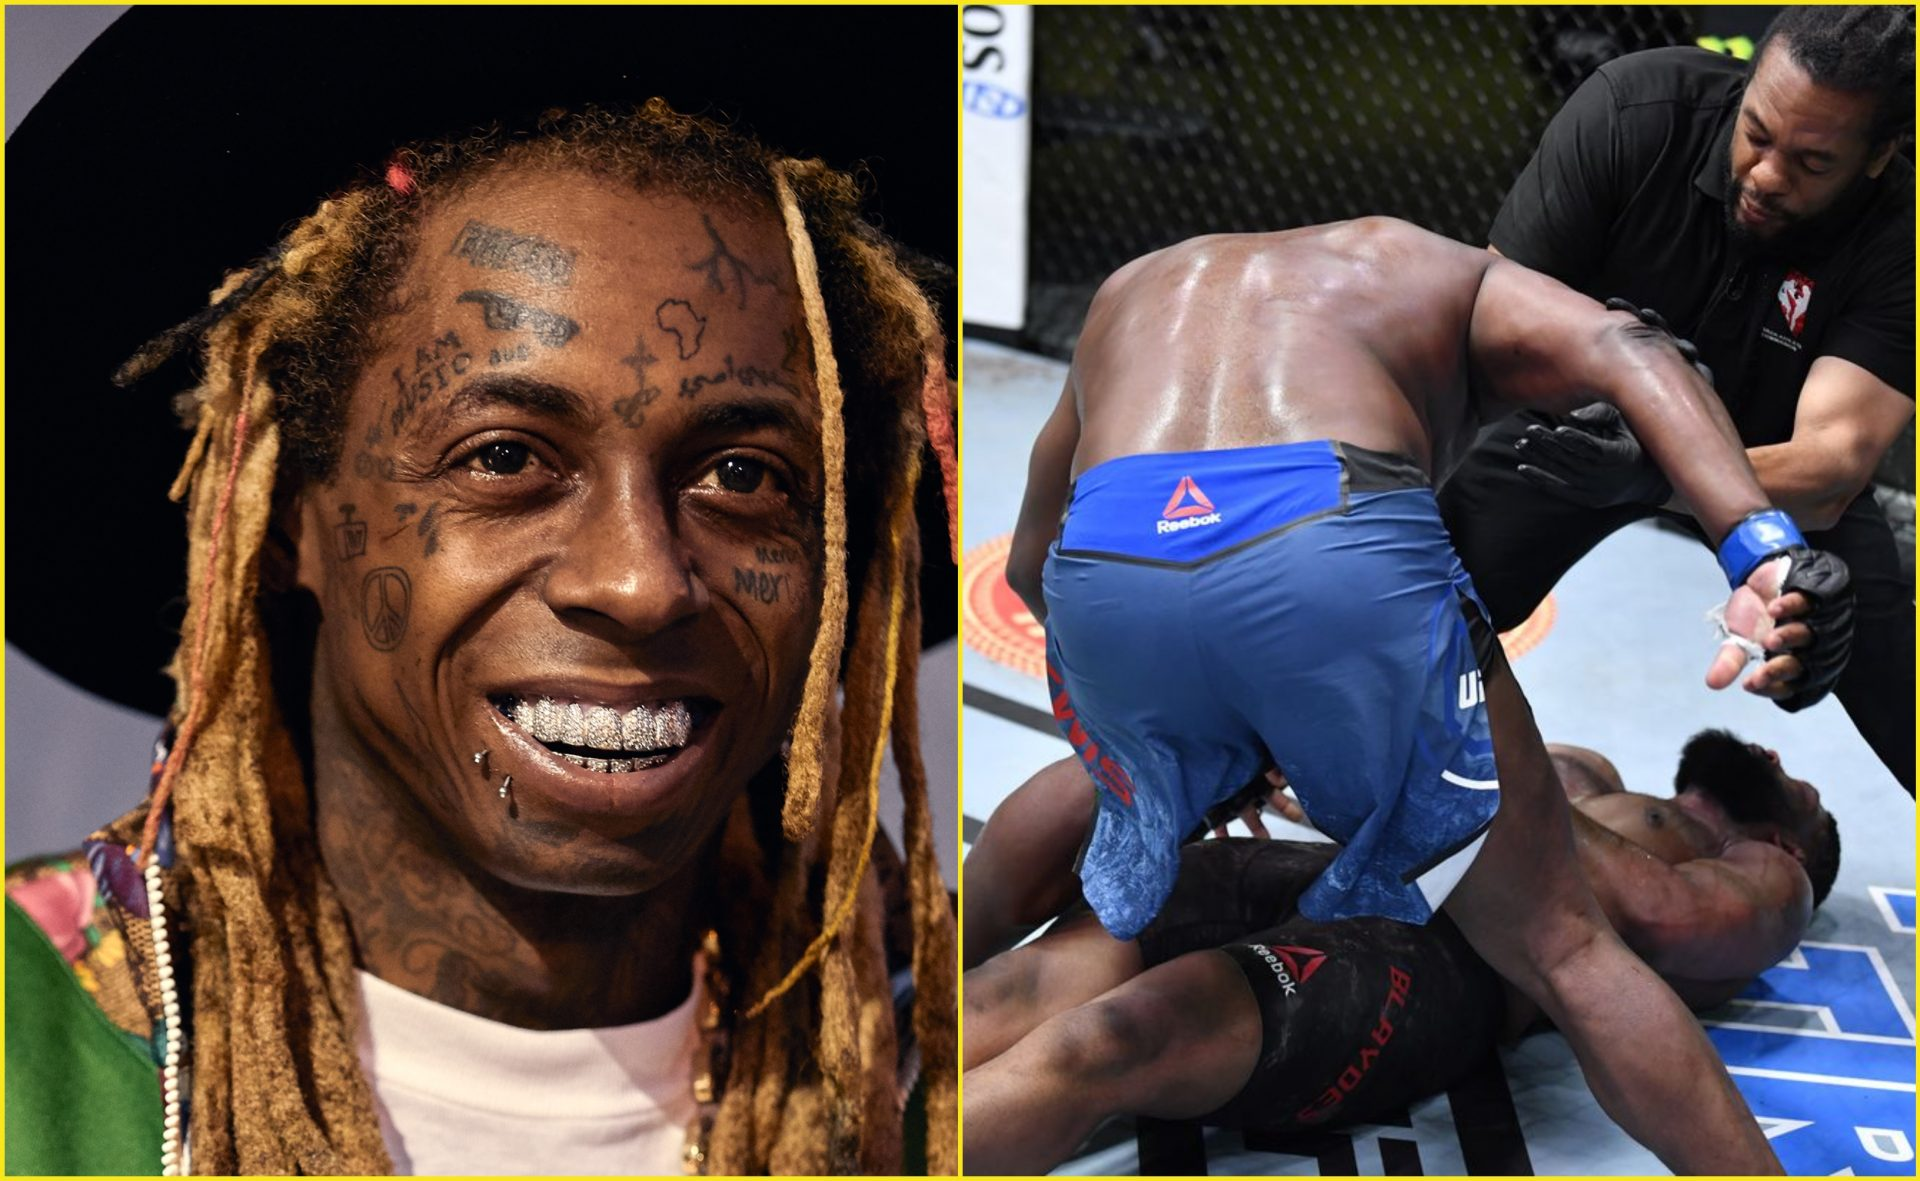 Lil Wayne blown away by Derrick Lewis' brutal KO of Curtis Blaydes at UFC Fight Night 185 - Lewis